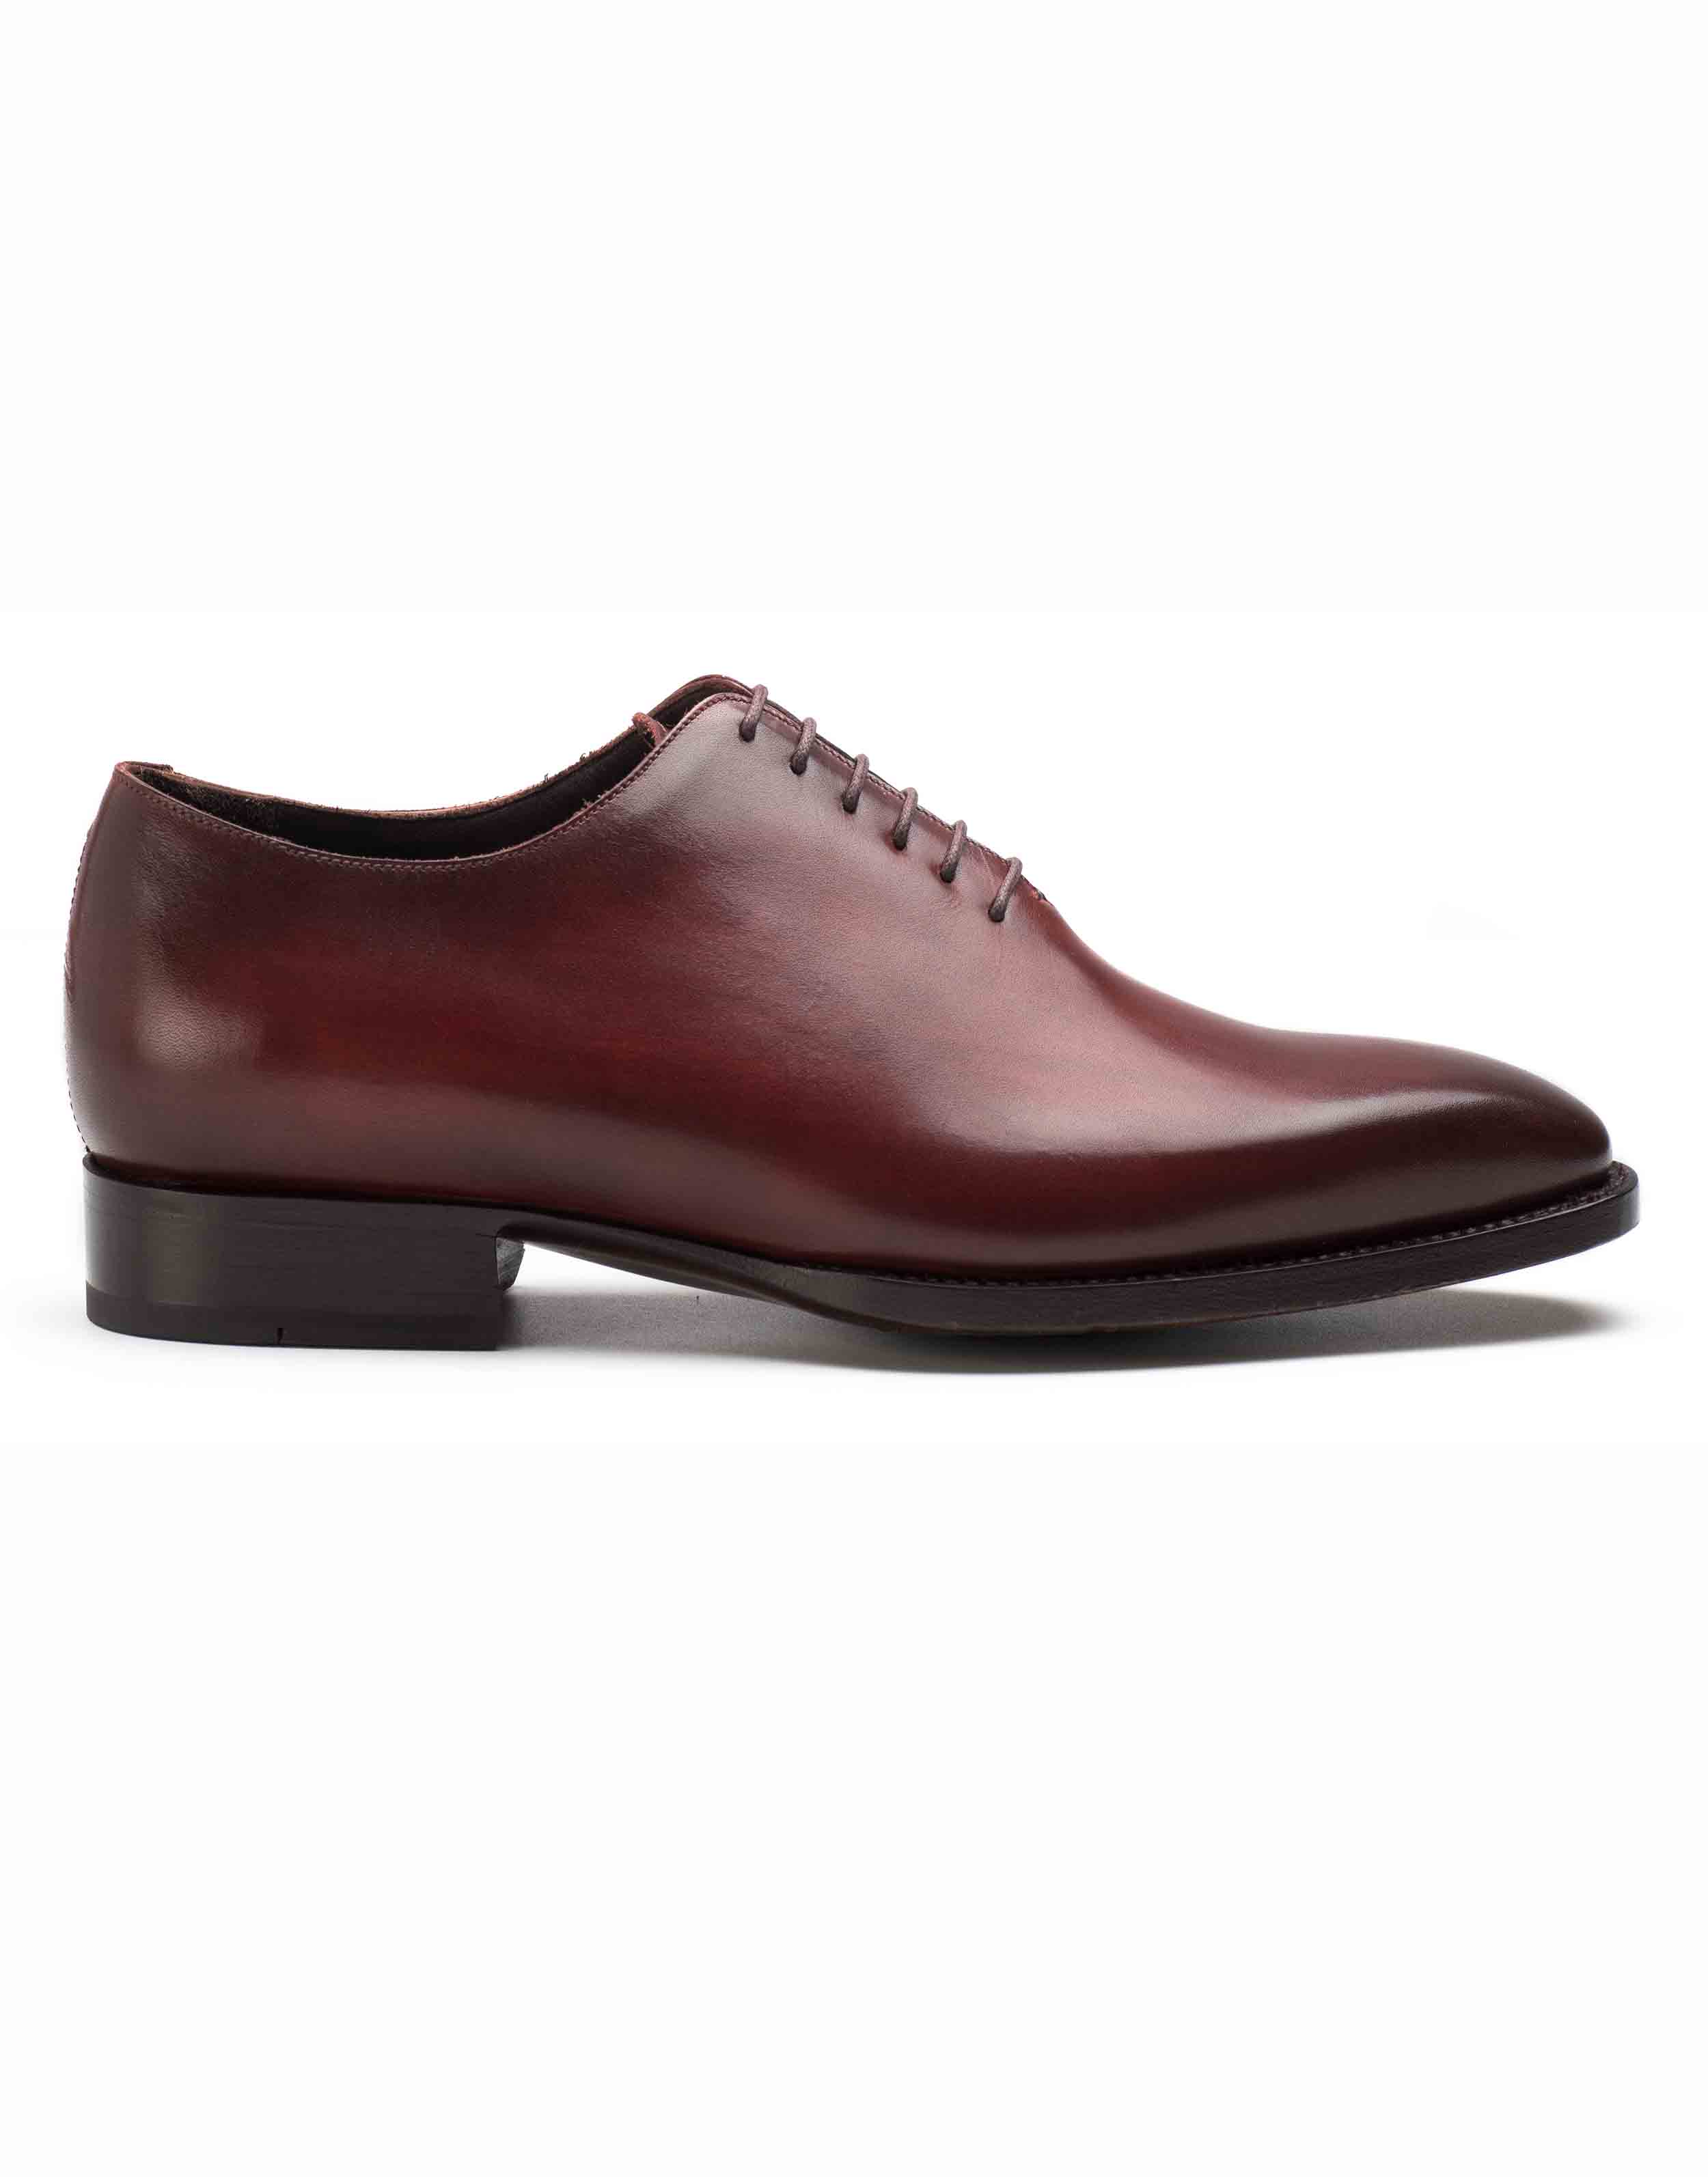 PLAIN TOE BURGUNDY OXFORD SHOE1